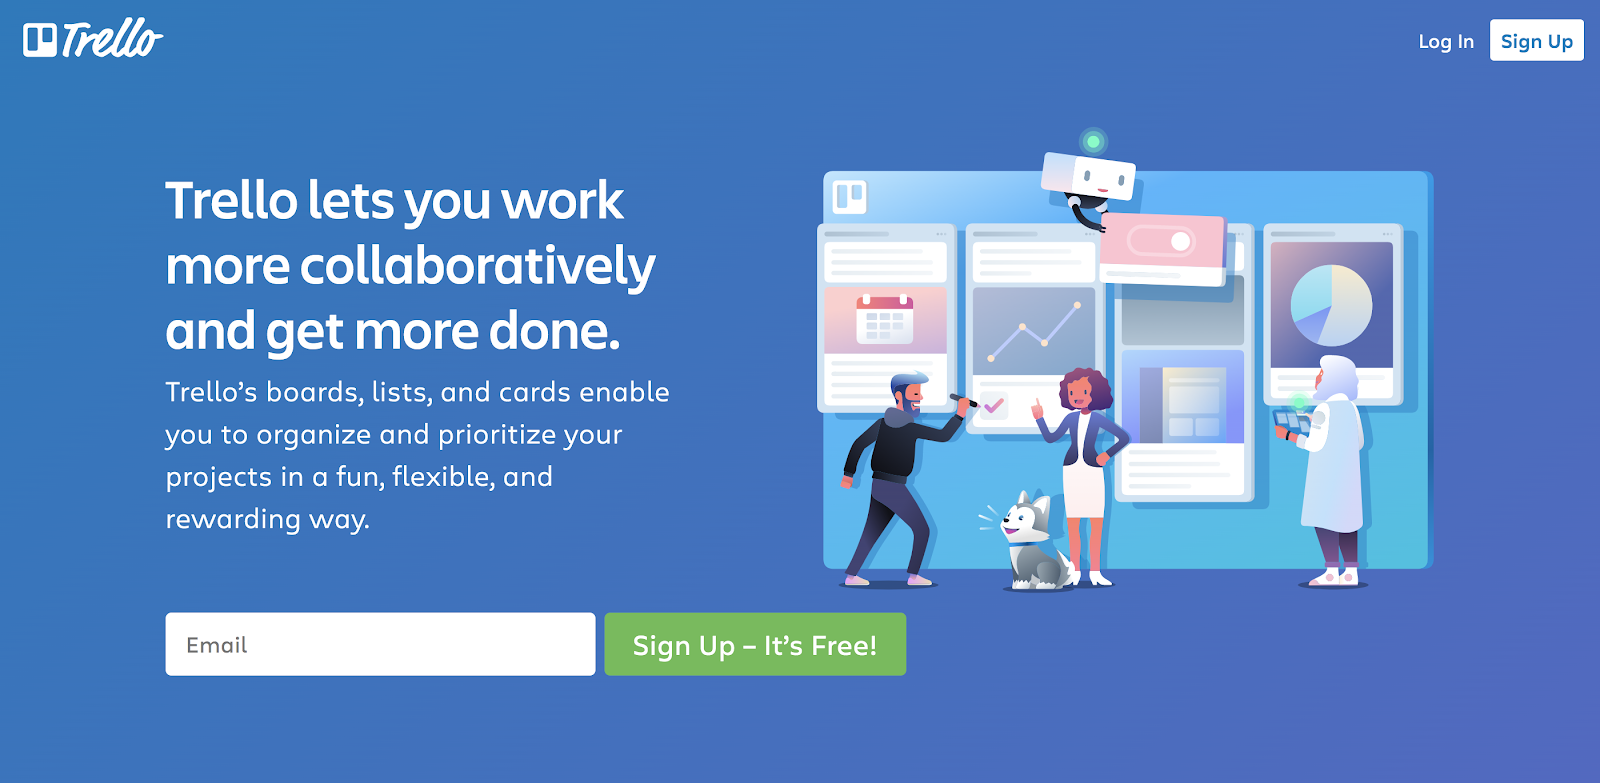 This is Trello's homepage.